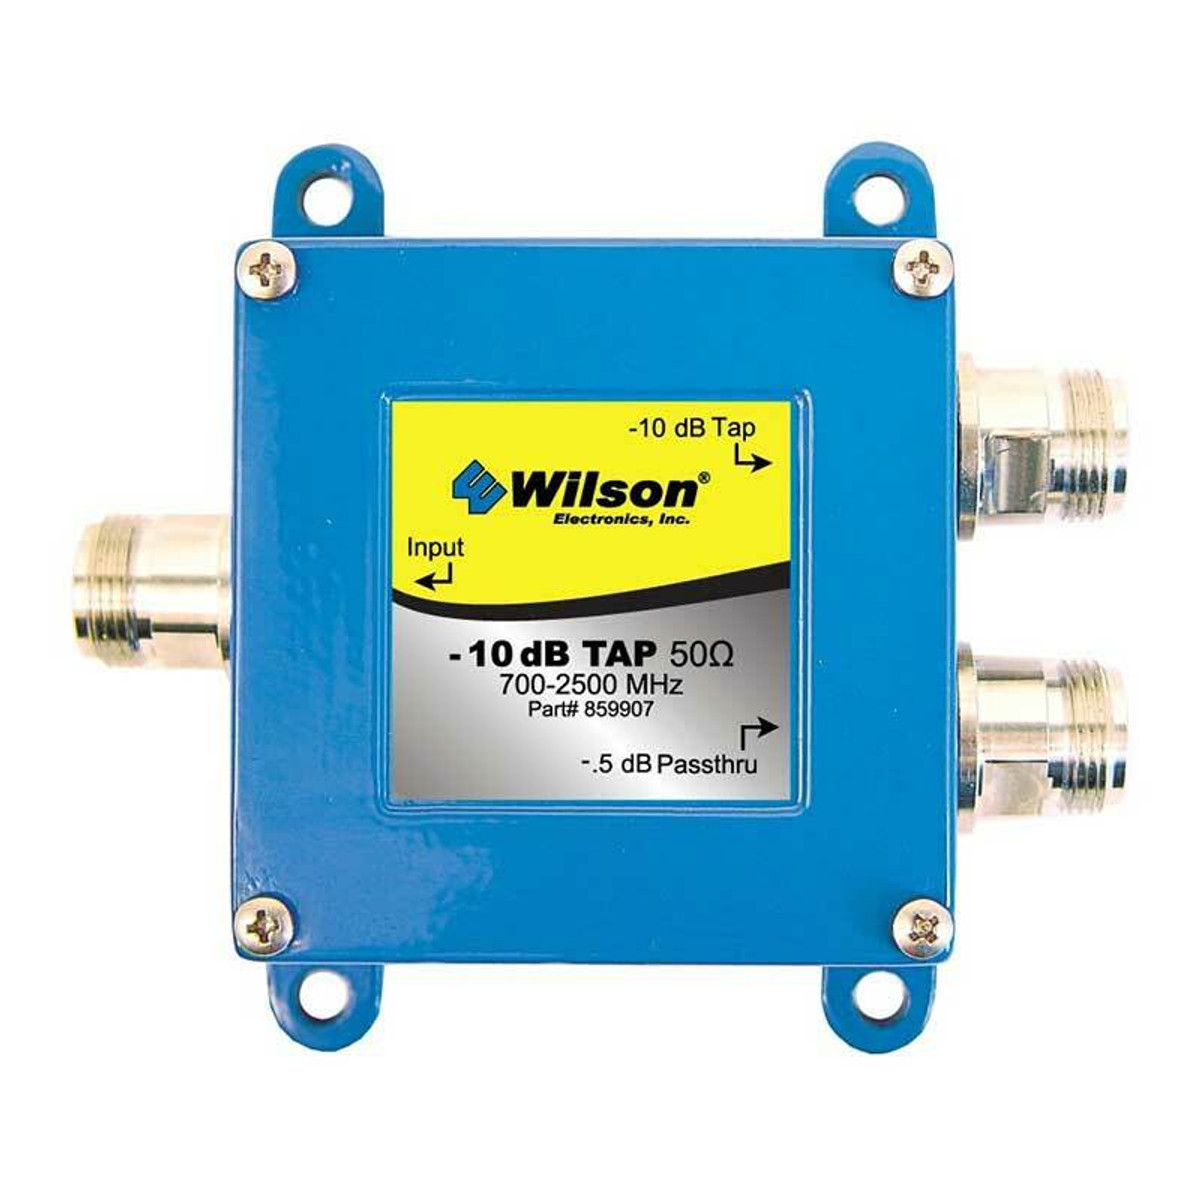 weBoost Wilson -10db / -0.5db Tap for 700-2500 Mhz 50ohm | 859907